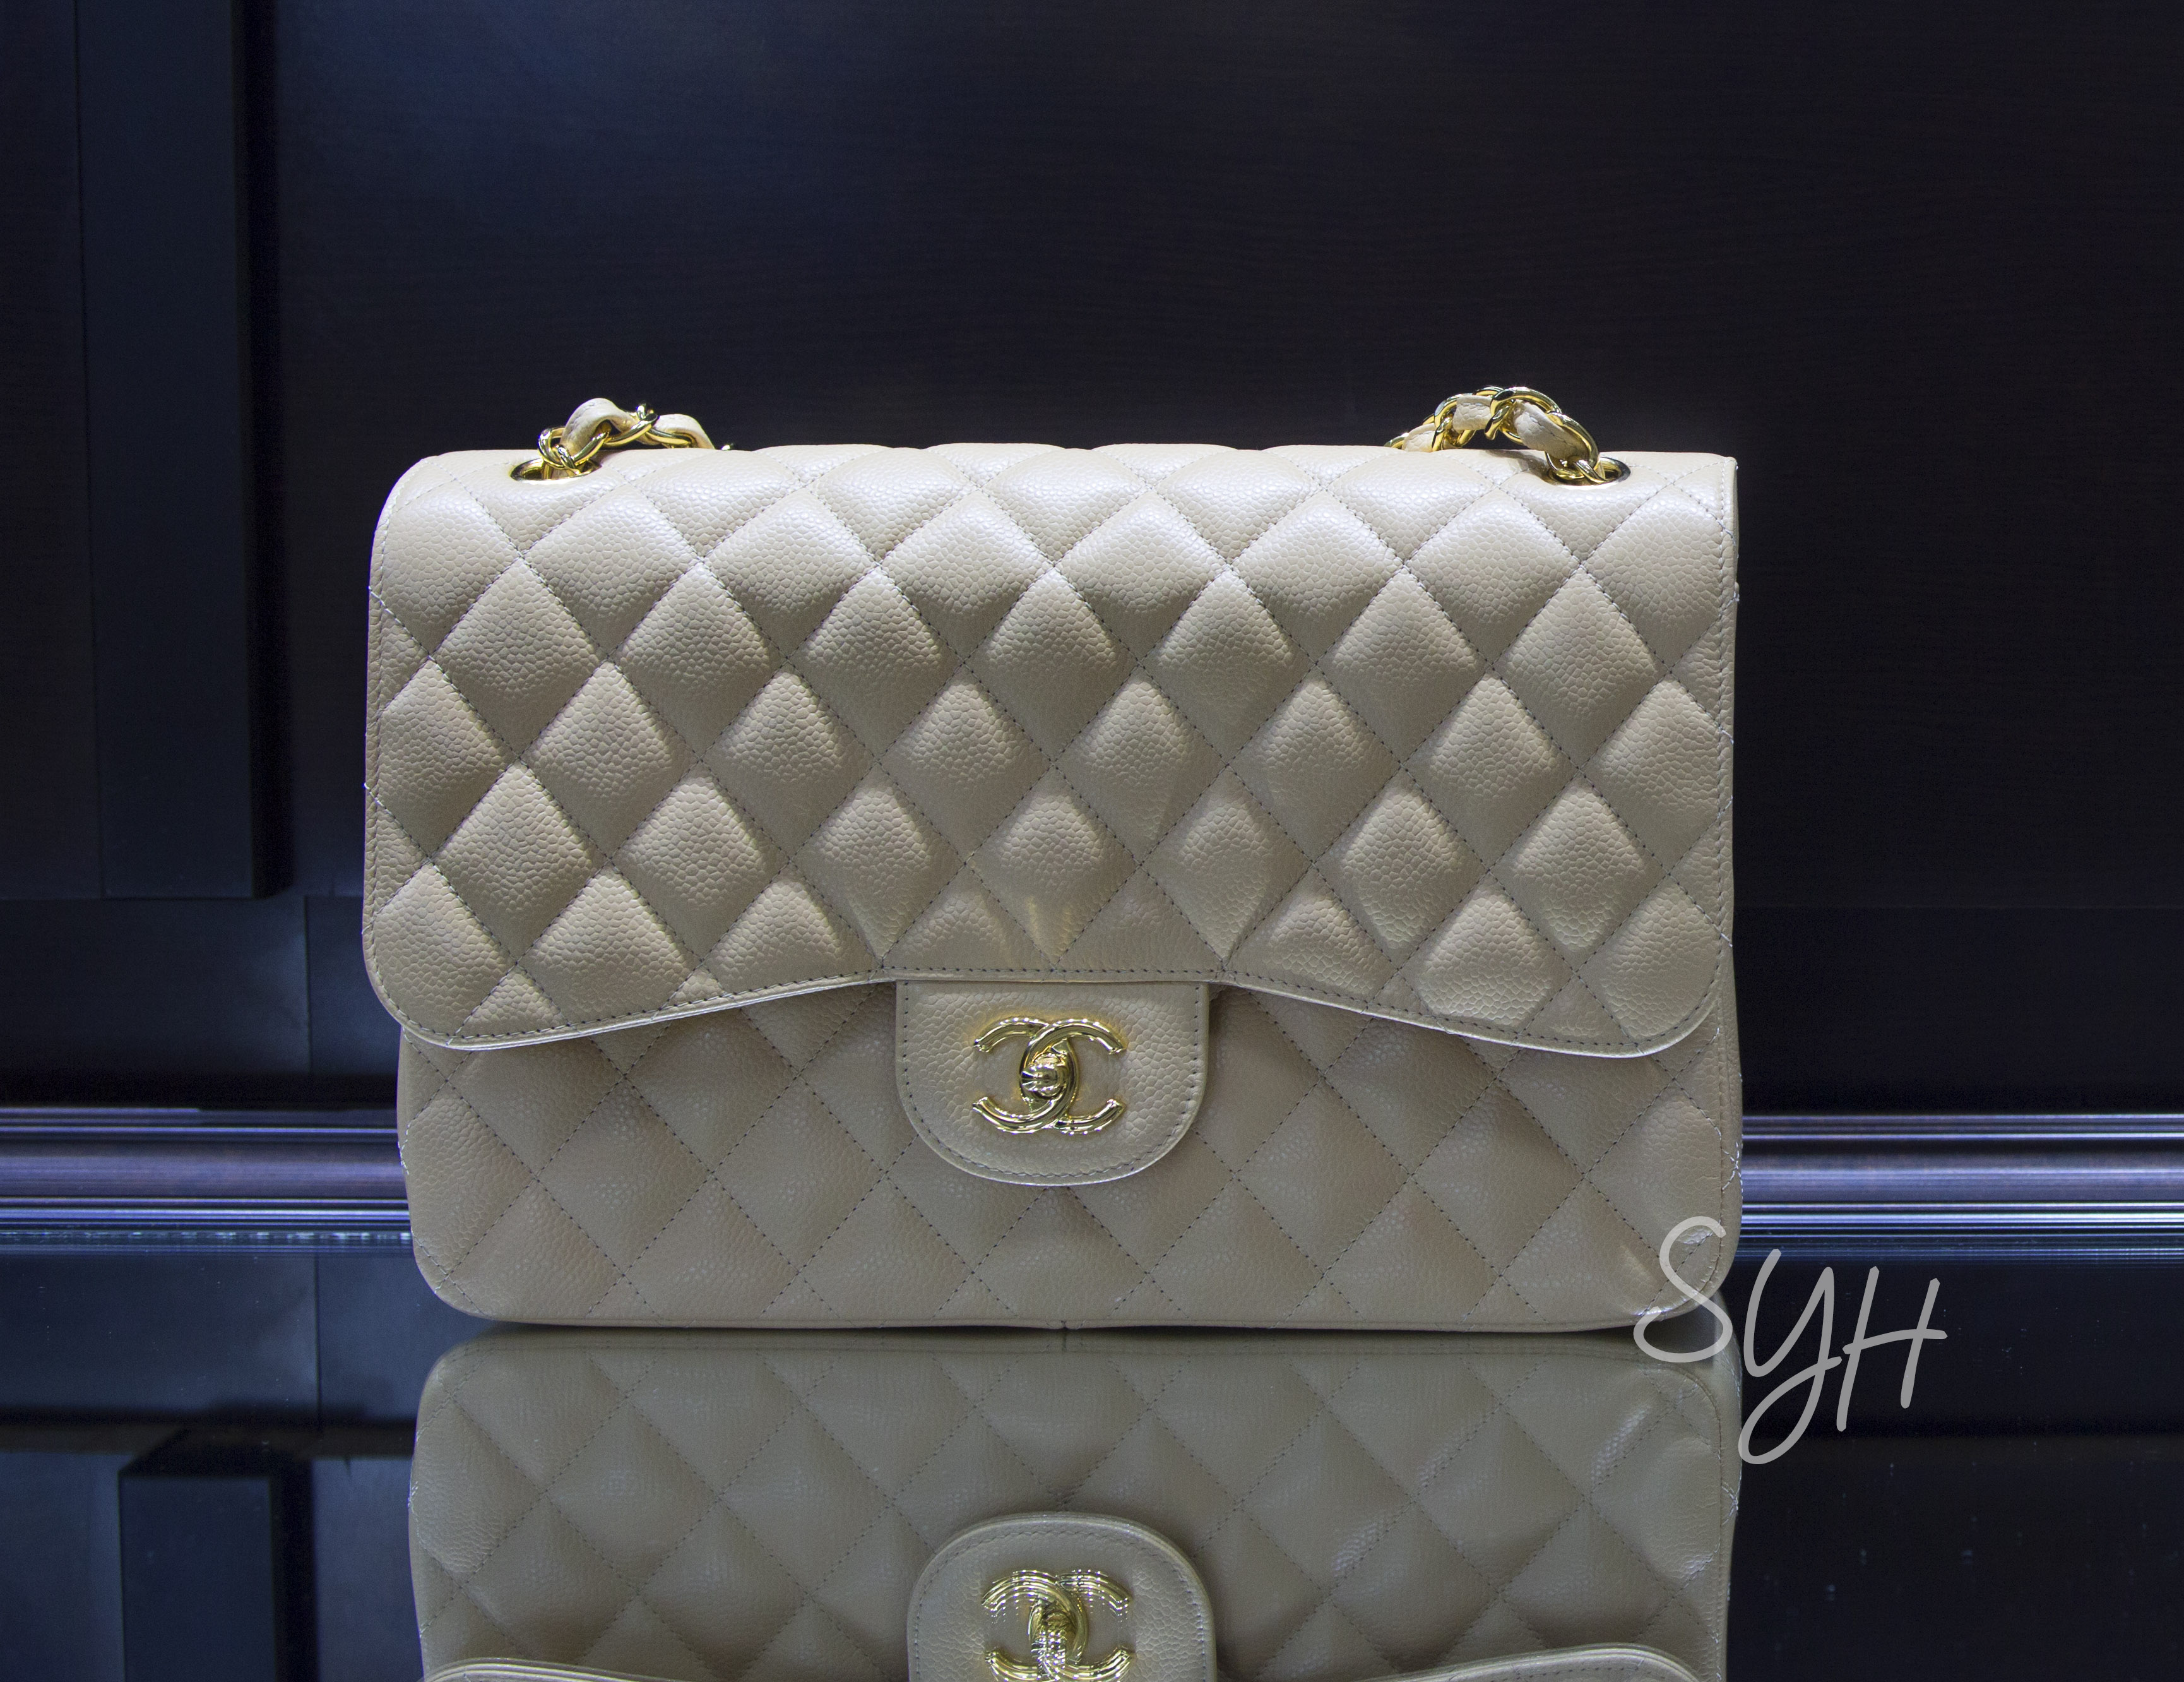 Sell designer handbags